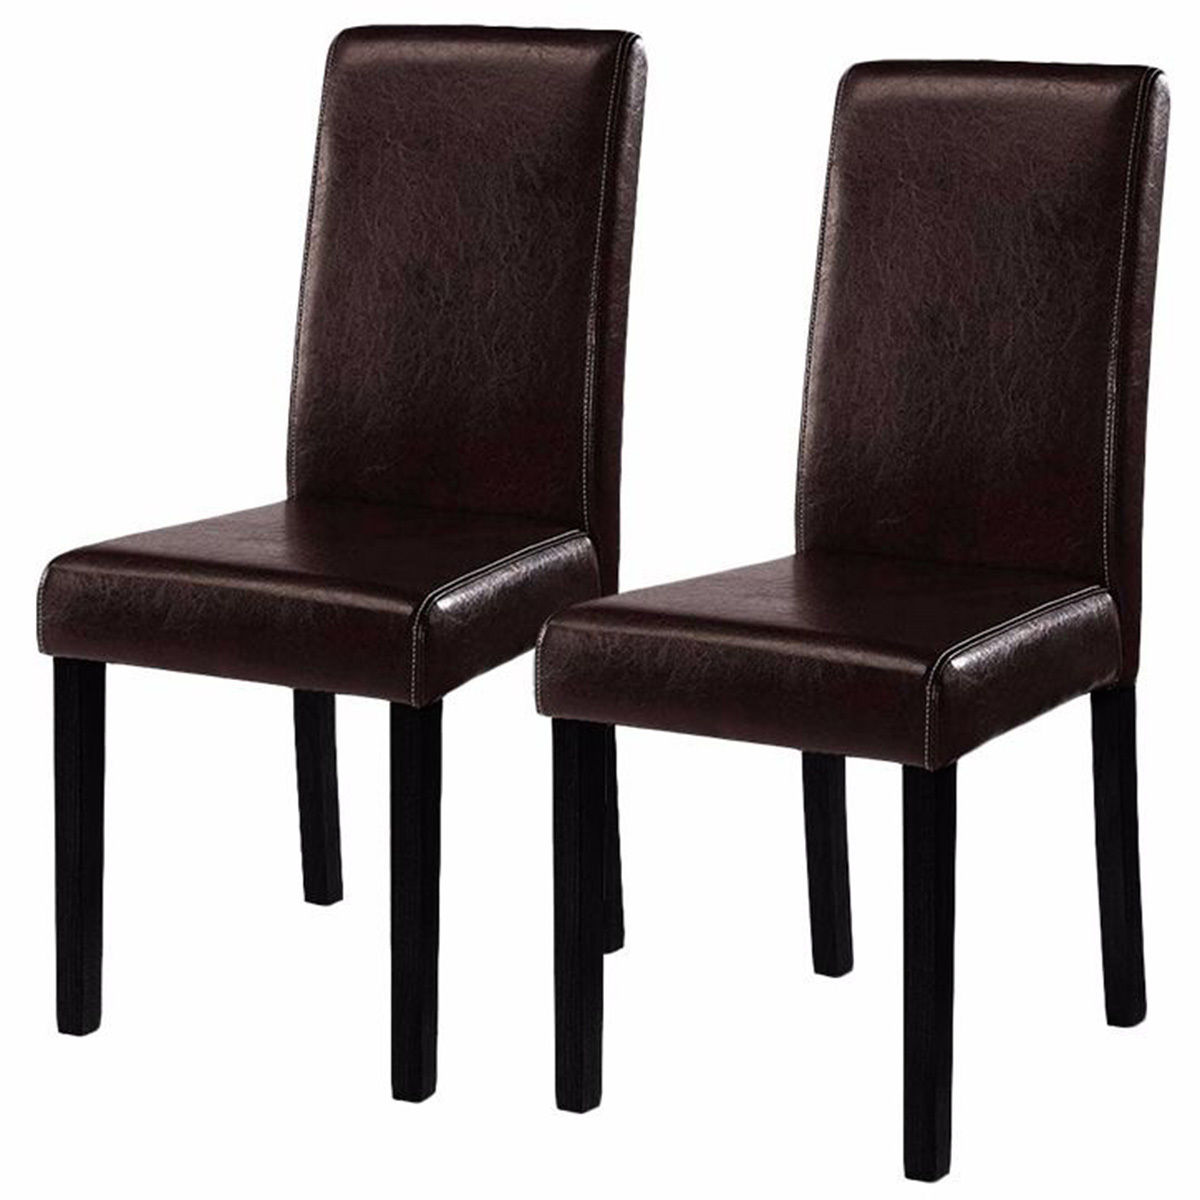 Costway Set of 2 Brown Elegant Design Leather Contemporary Dining Chairs Home Room by Costway